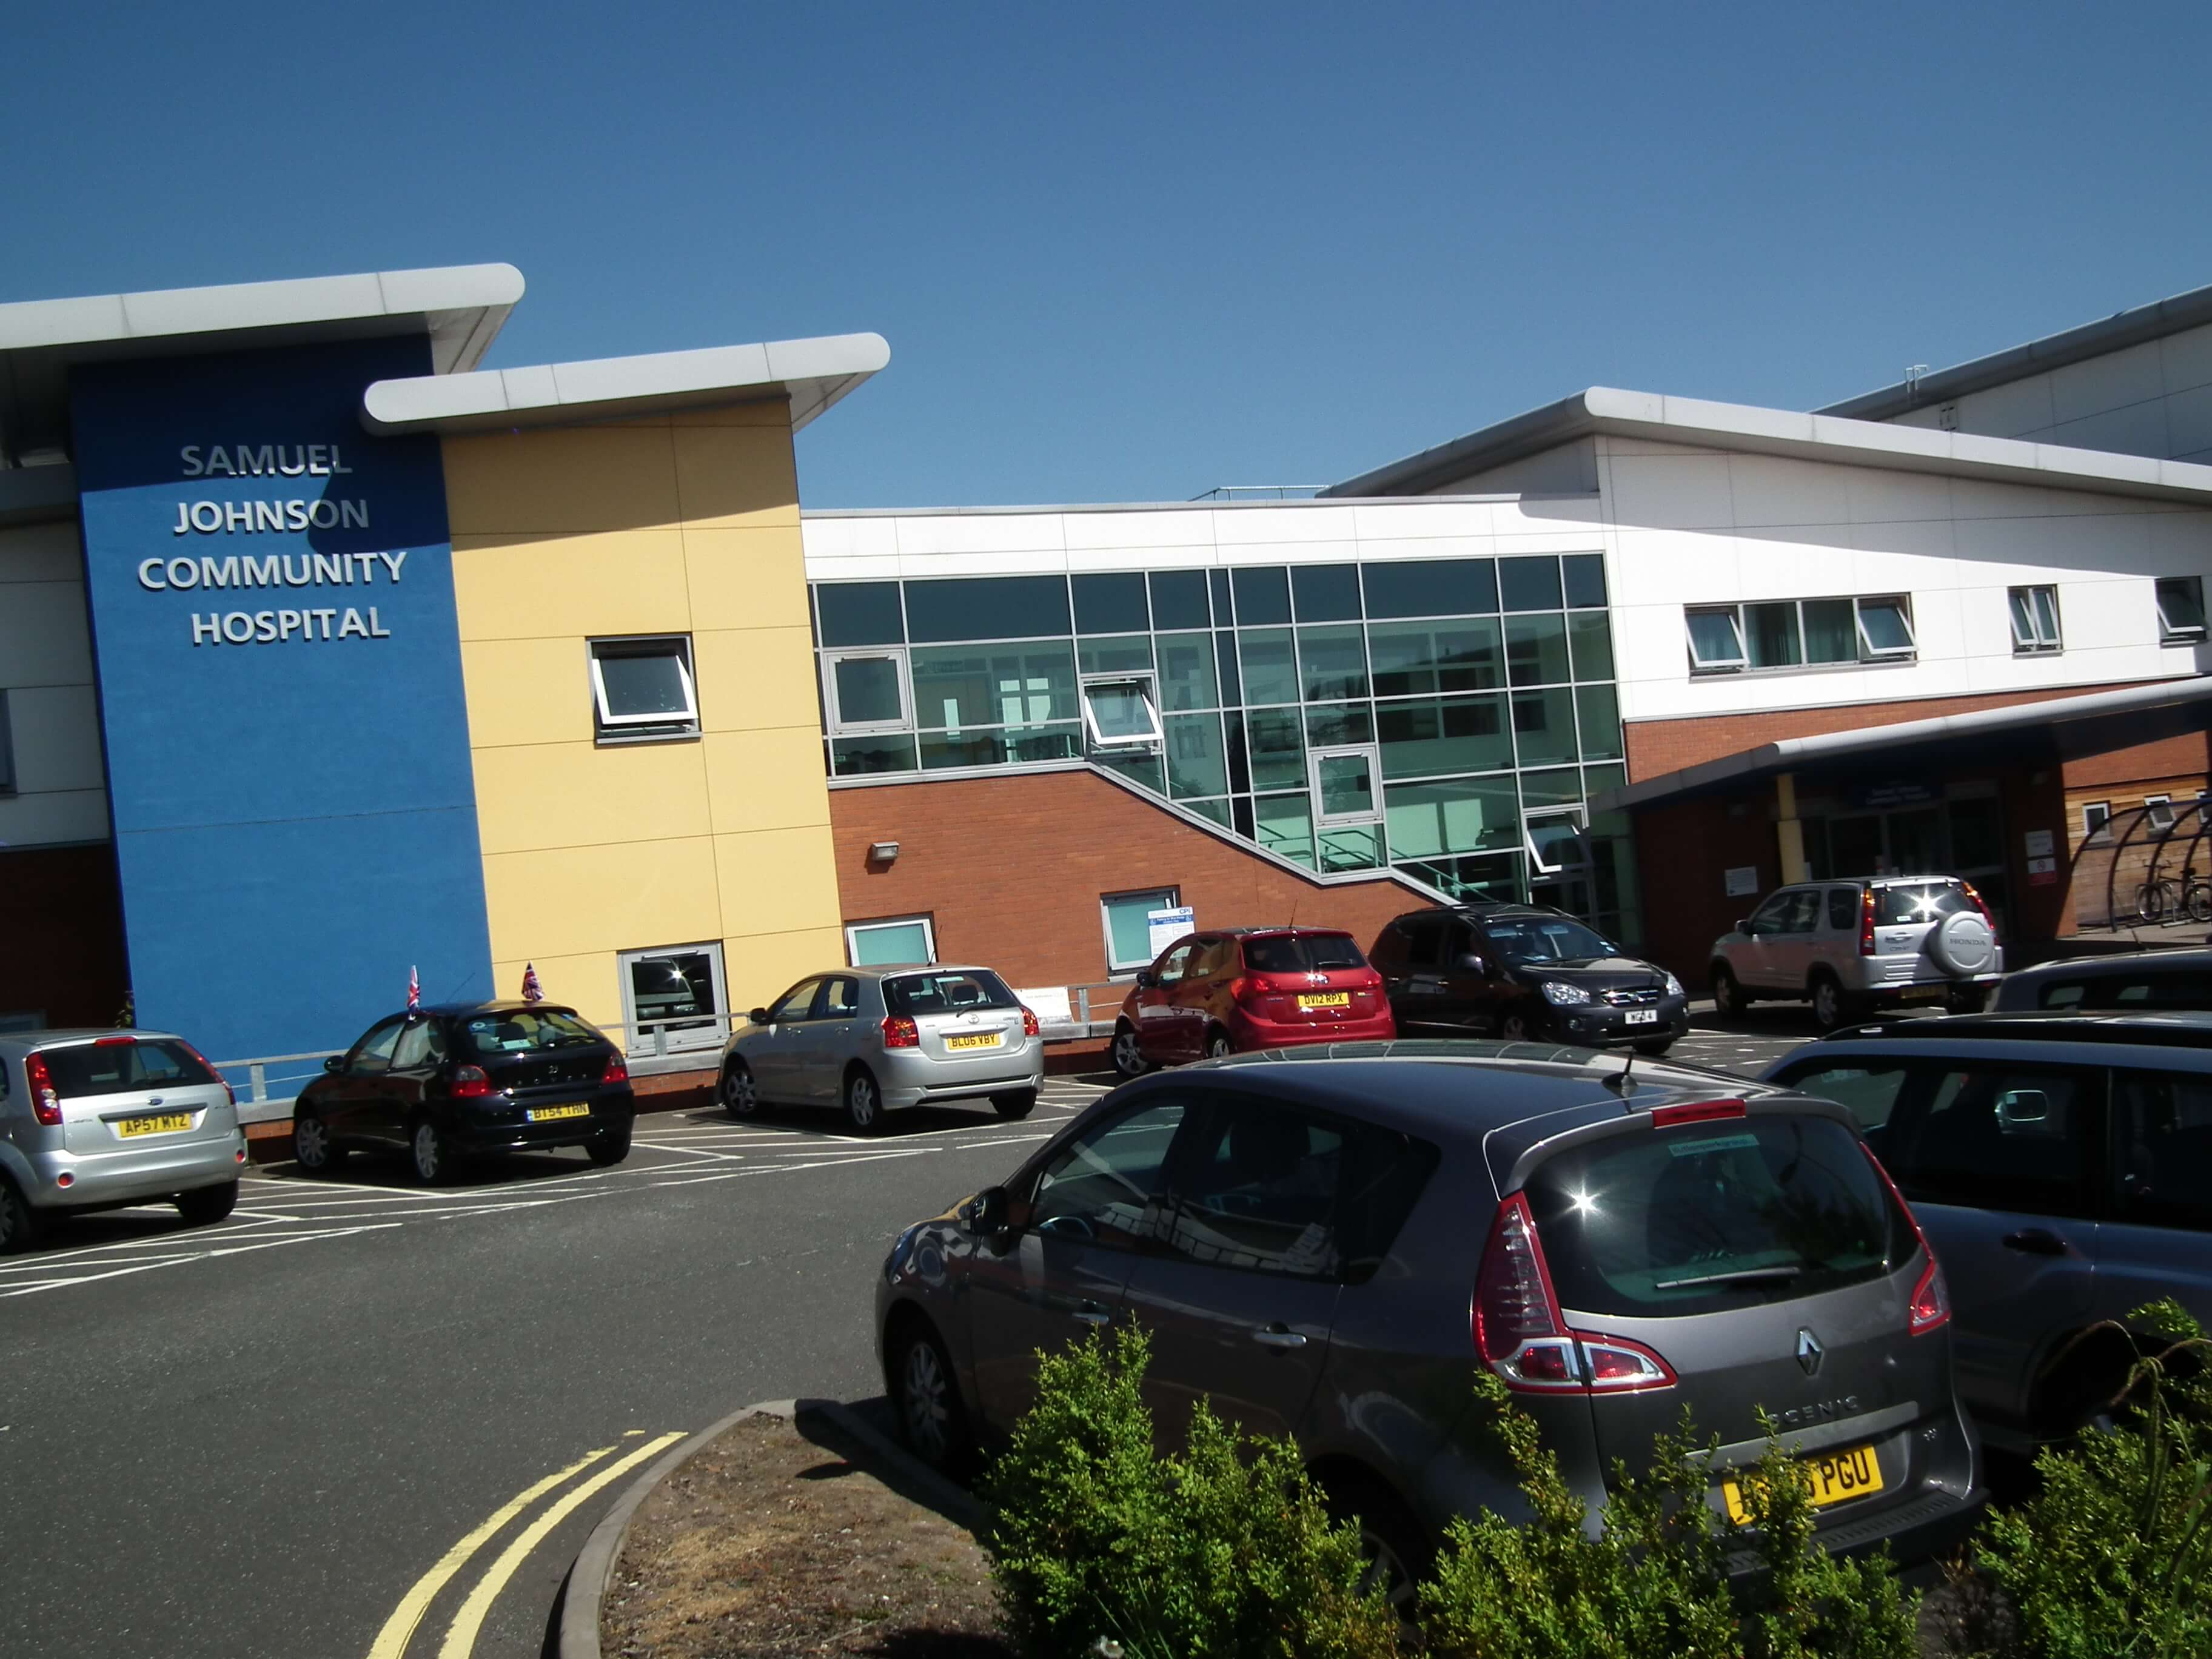 Samuel Johnson Community Hospital, Lichfield picture